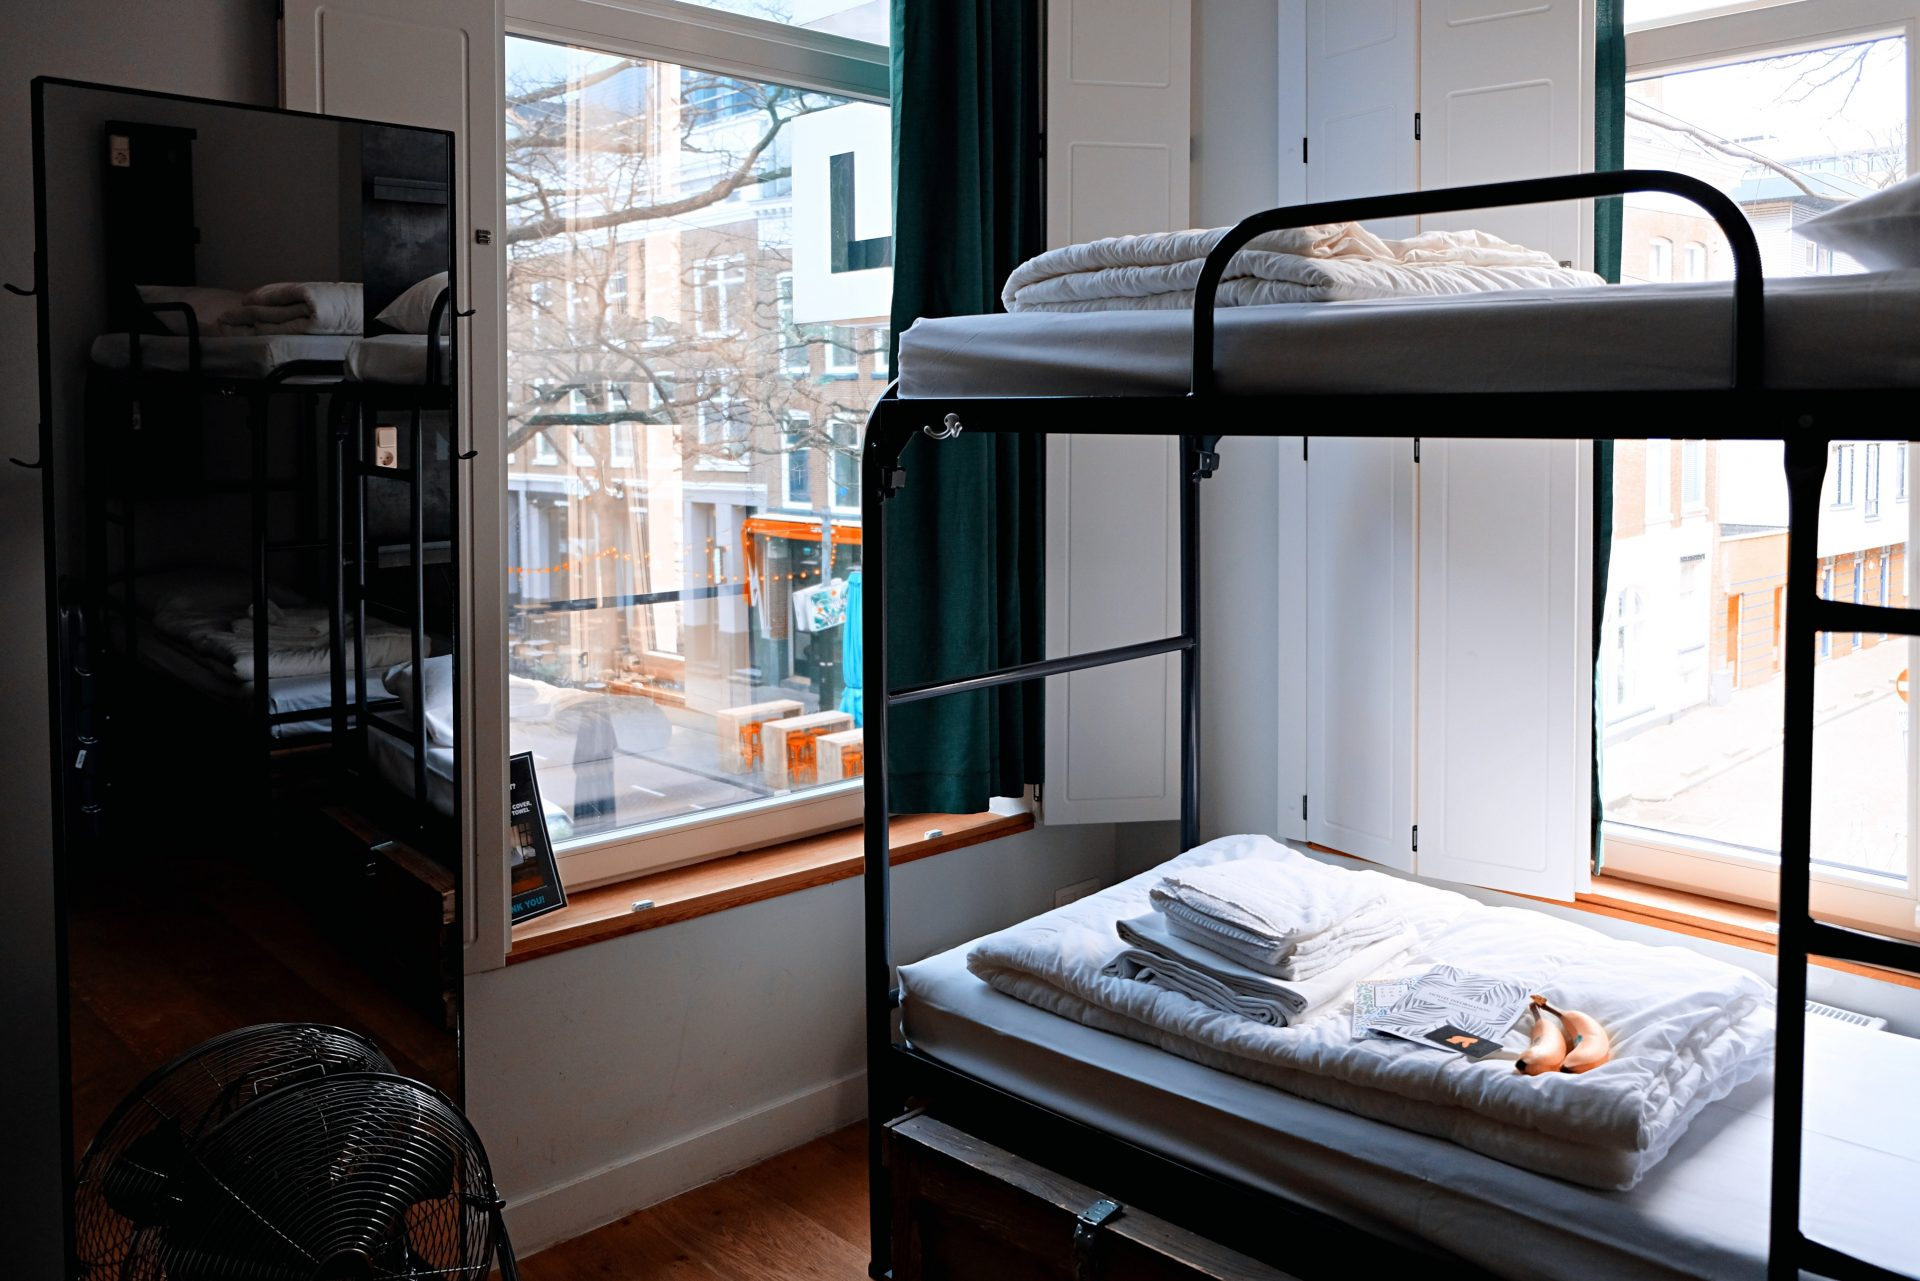 5 reasons why i hate staying at hostels